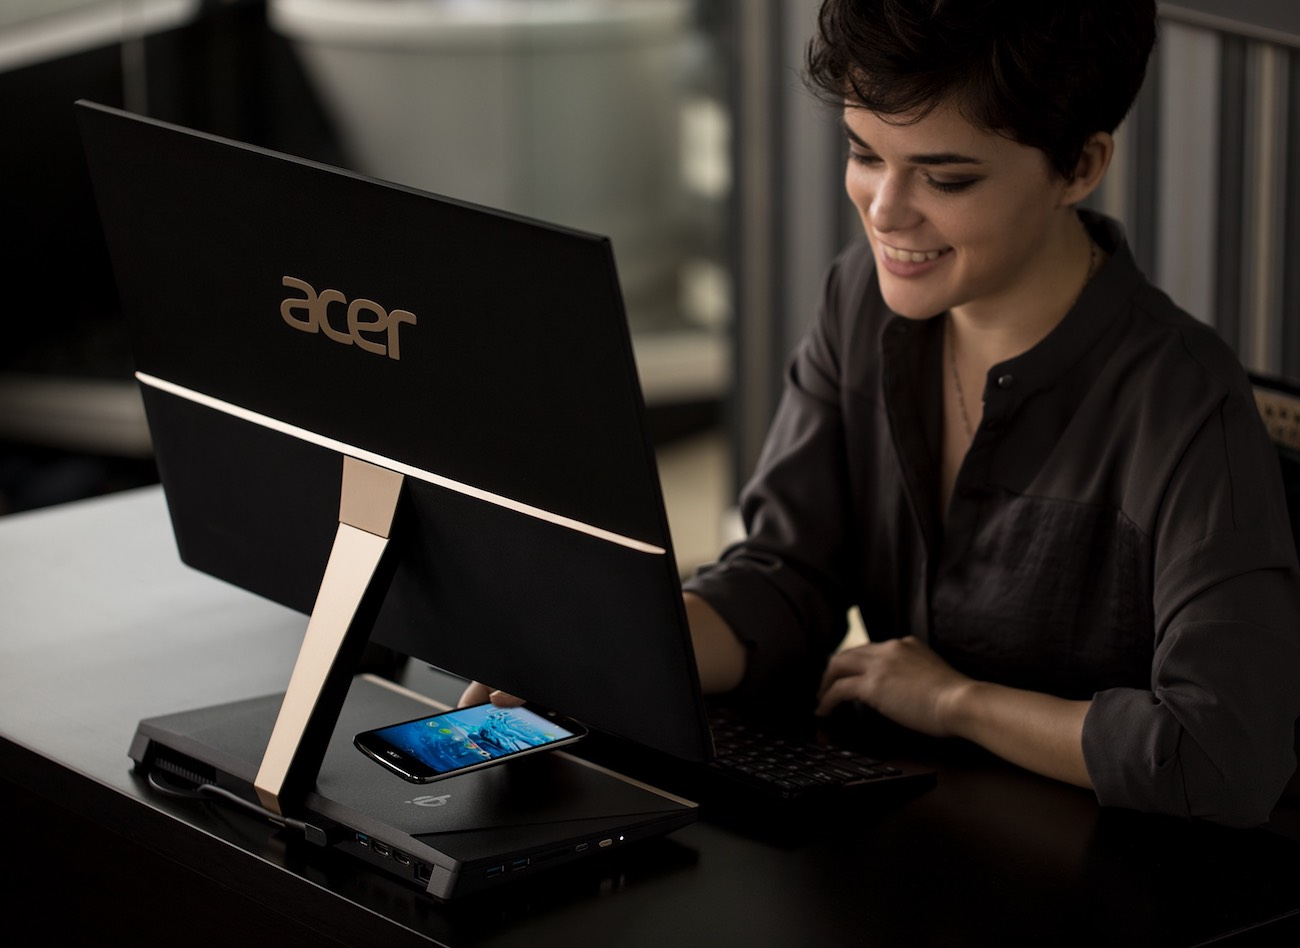 Acer+Aspire+S+24+All-in-One+Desktop+Computer